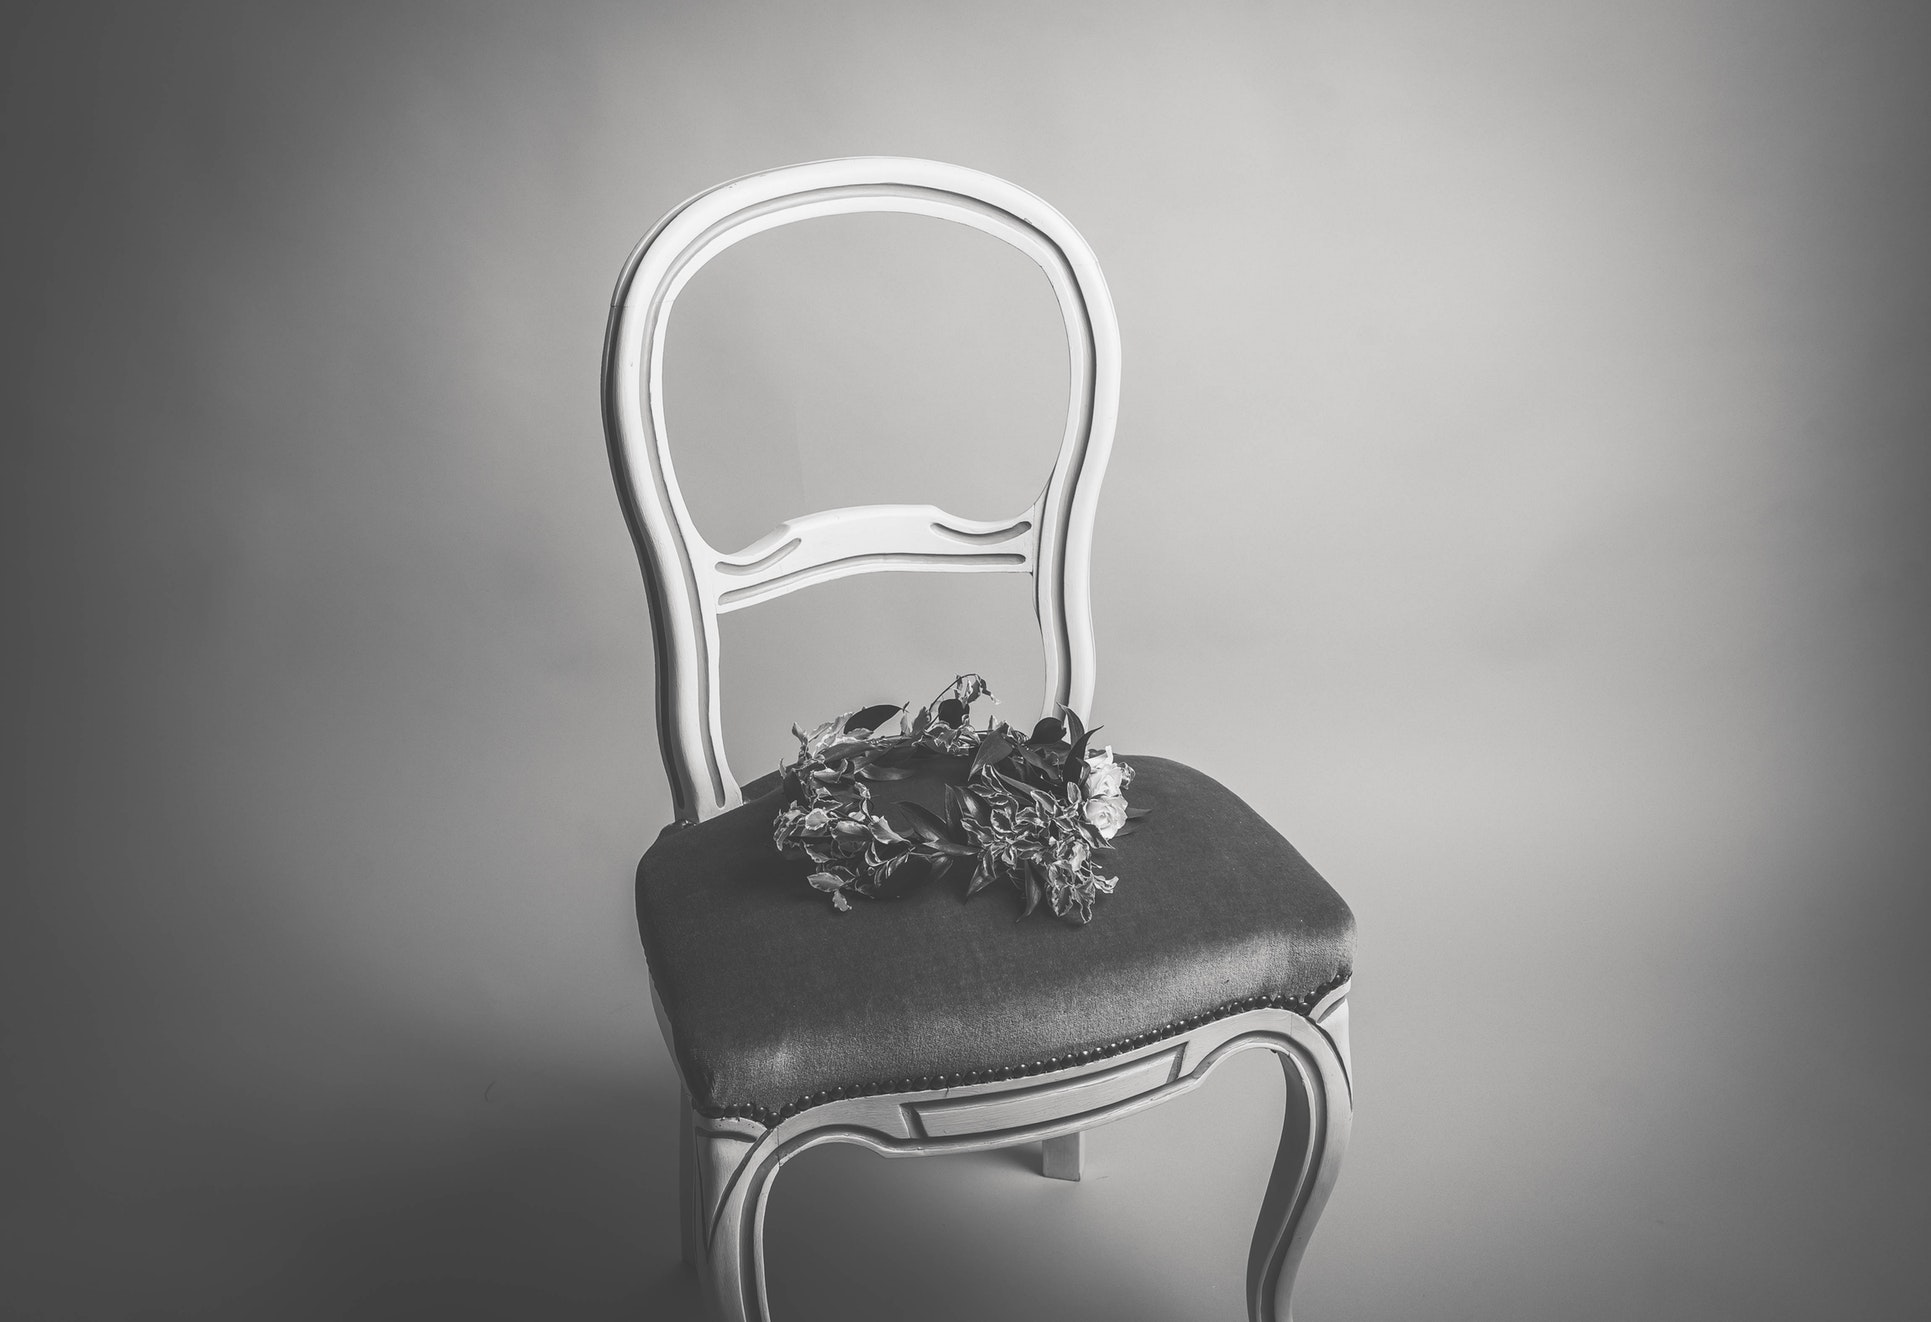 a chair in a dark room with flowers on top of it